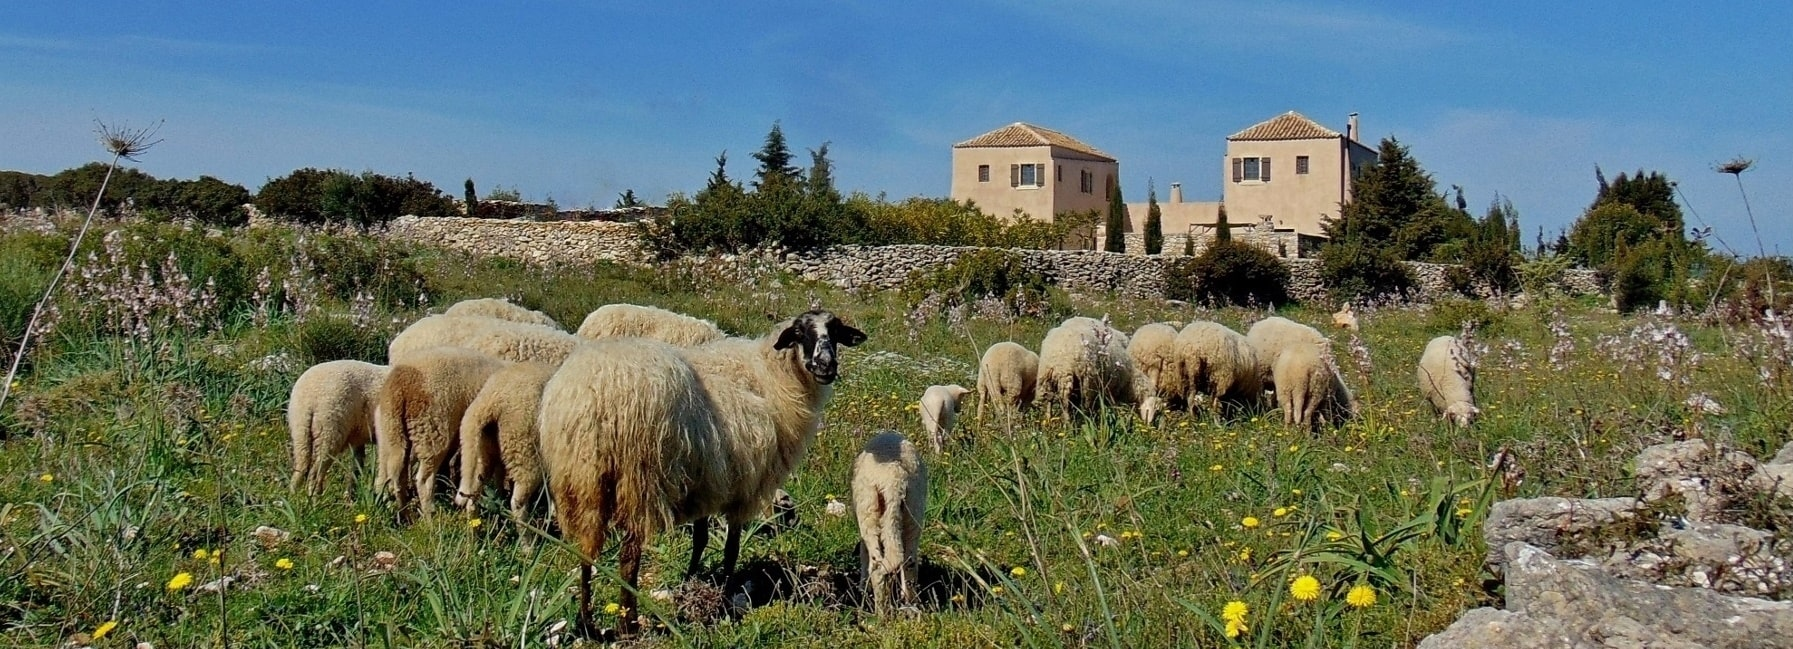 Home - Xenonas Fos ke Choros - sheep around the guesthouse